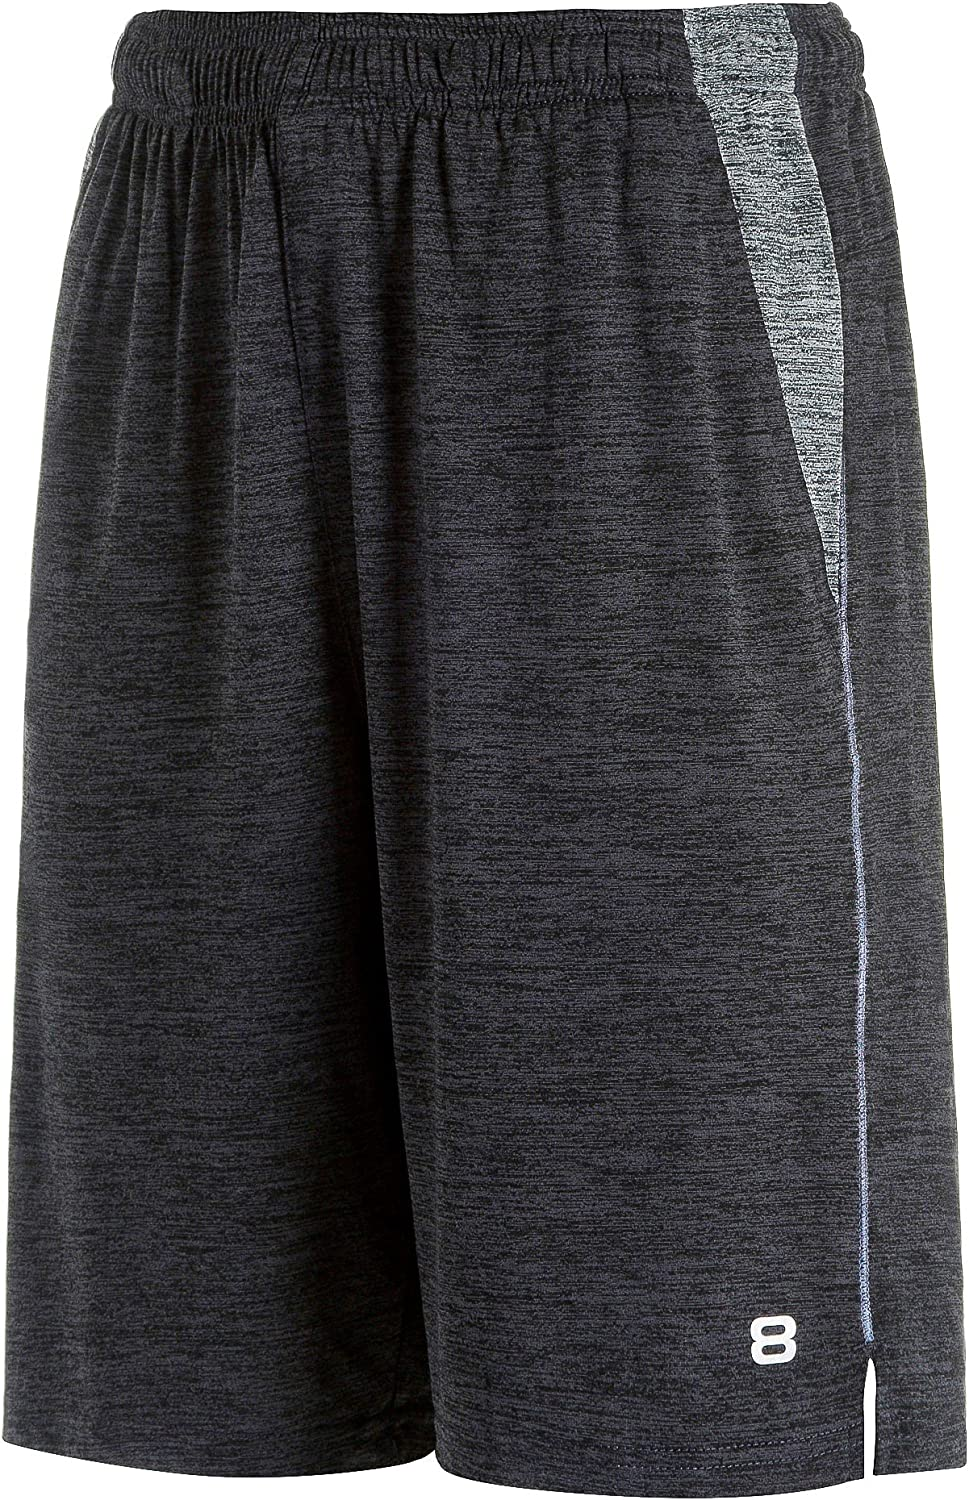 Layer 8 Men's Short Quickdry Athletic 10 Inch Inseam Extra Mile Short with Two Side Pockets